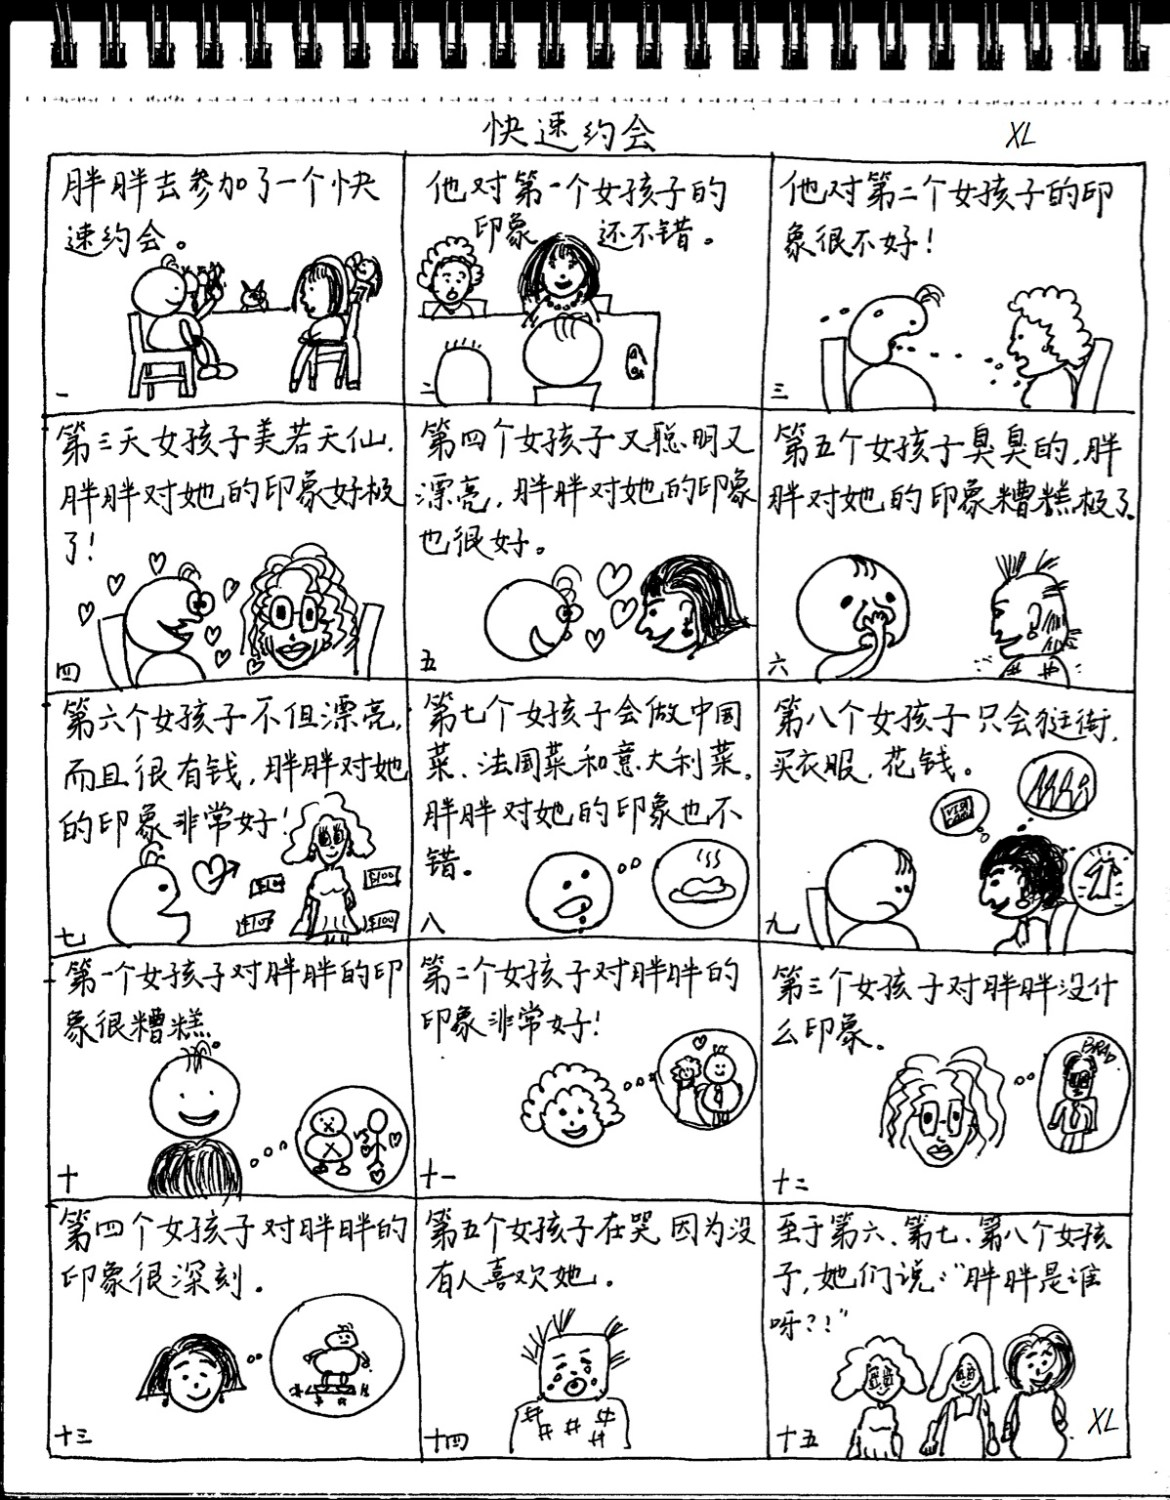 xian_lu_comic_strip_for_cfl_samples10